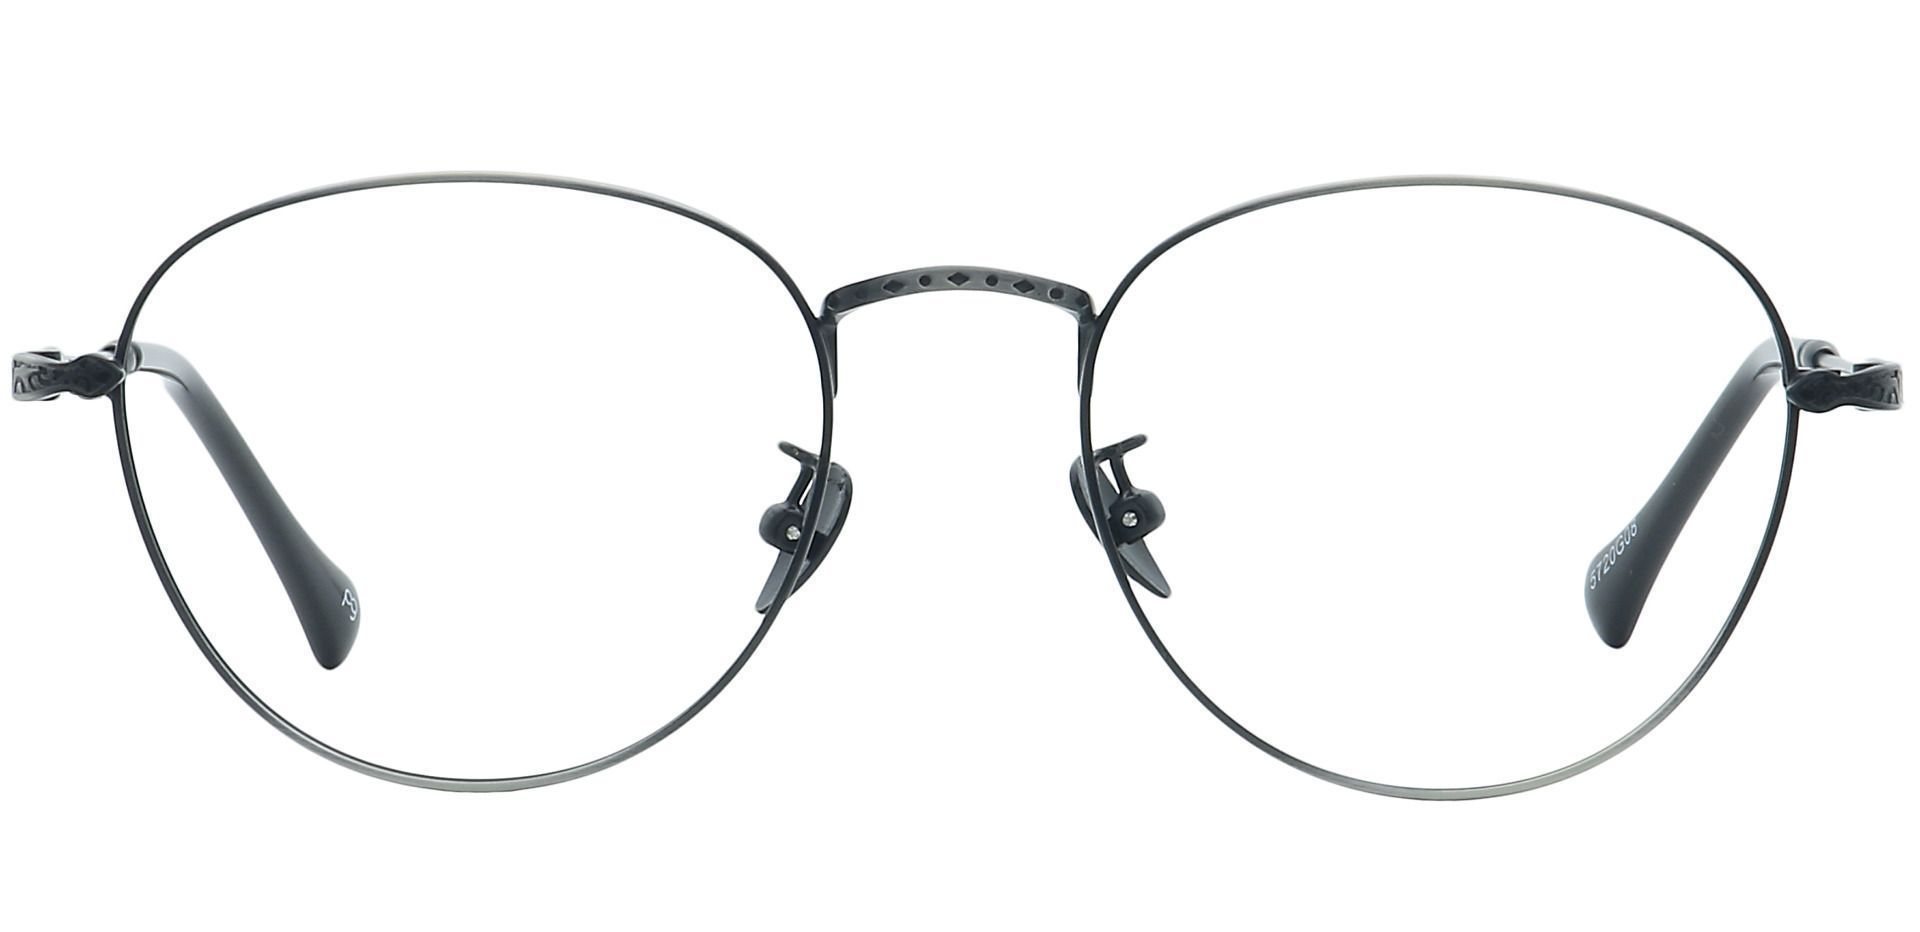 Shawn Oval Non-Rx Glasses - Gray